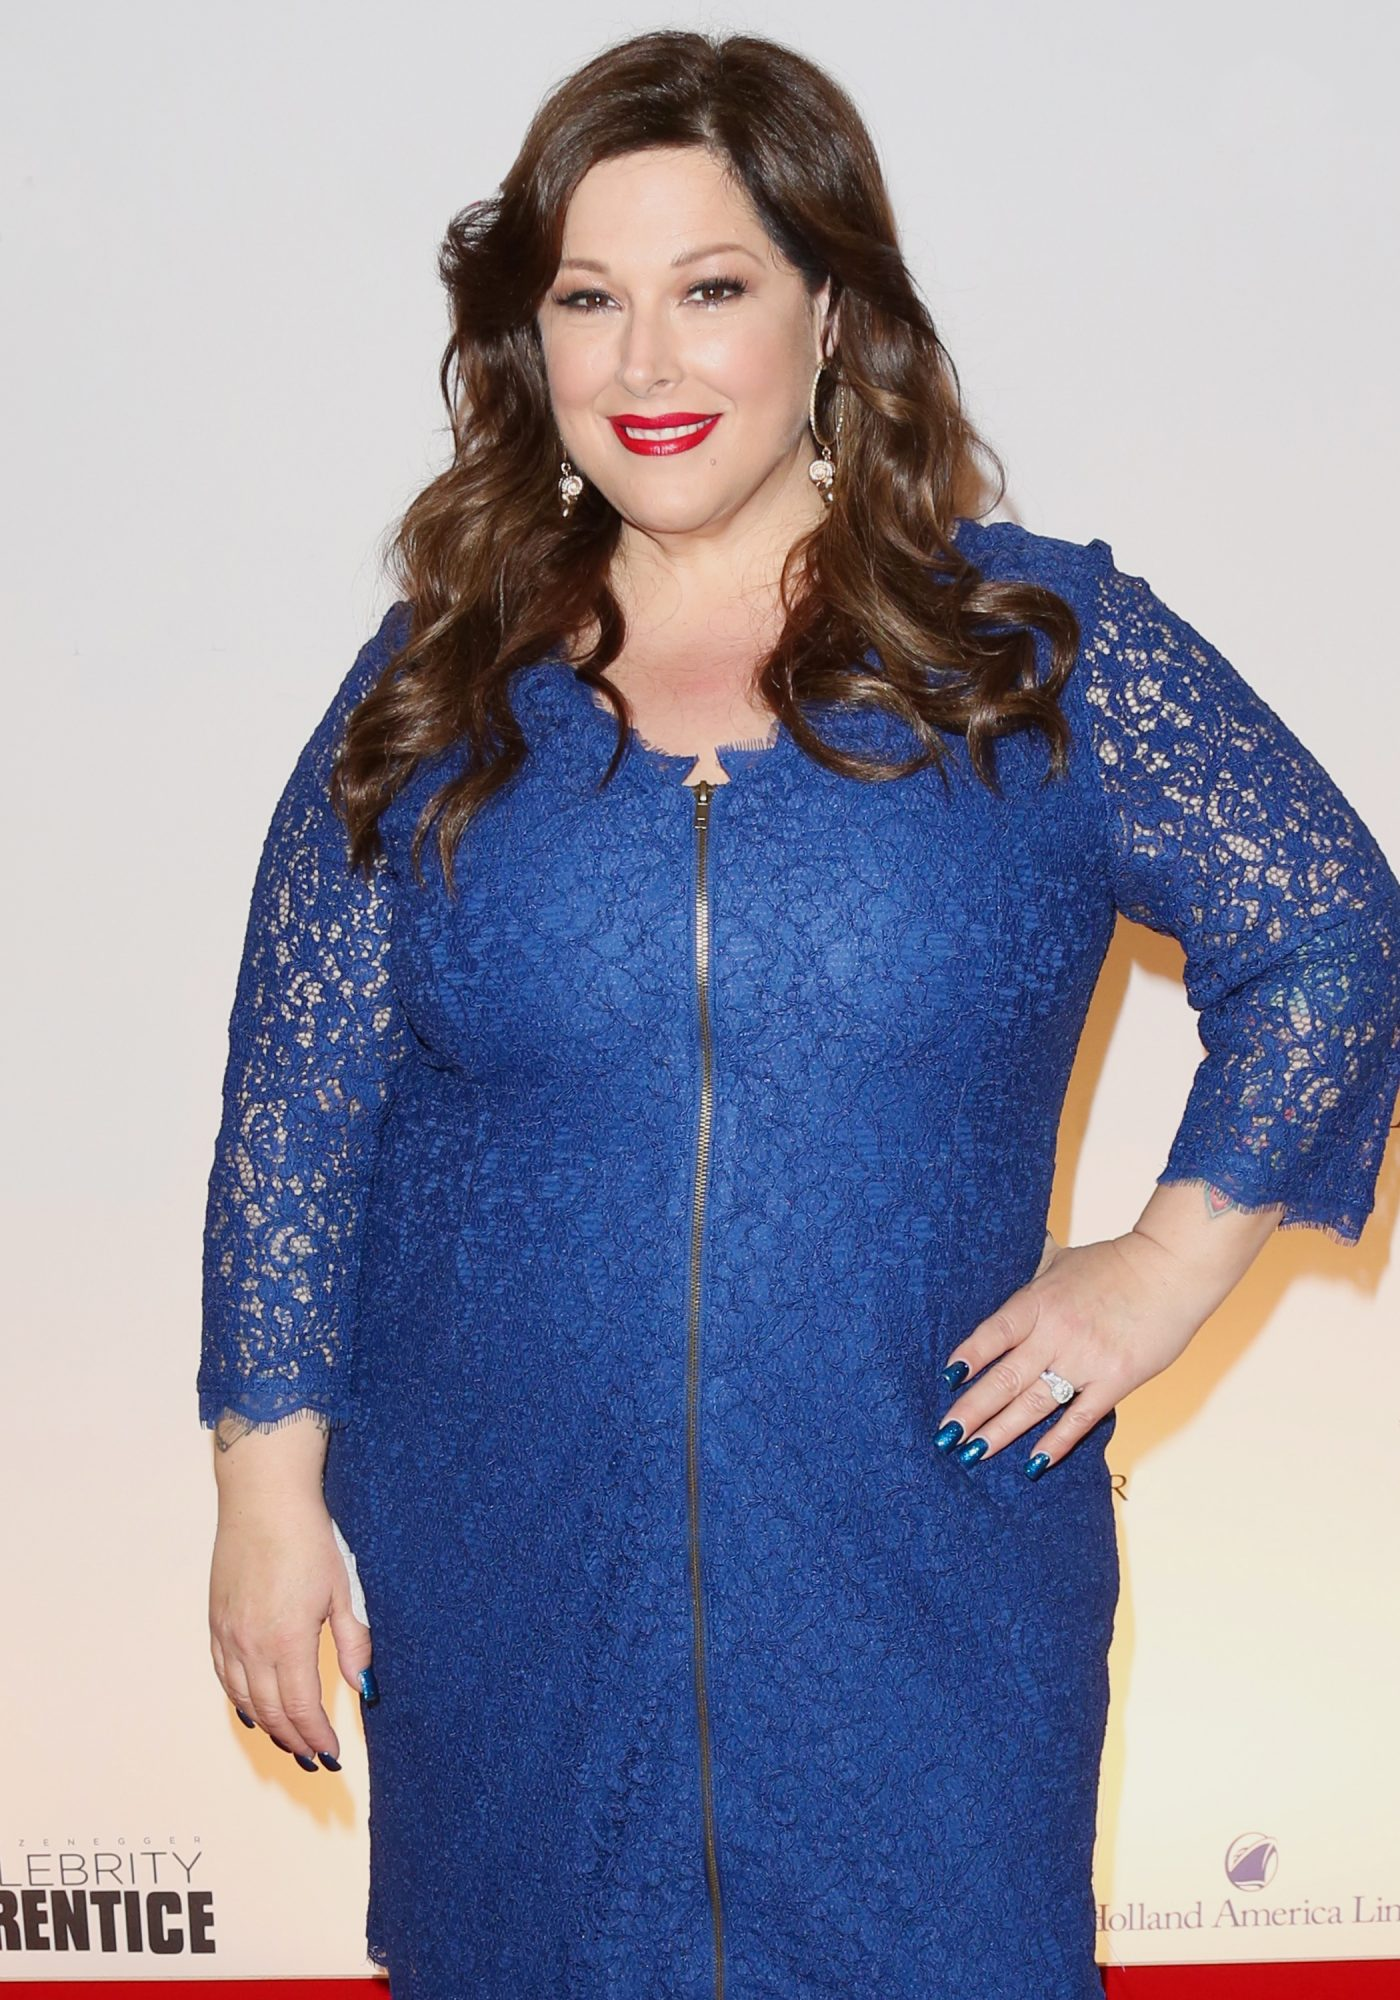 Carnie Wilson Will Undergo Surgery to Remove Ruptured Breast Implants